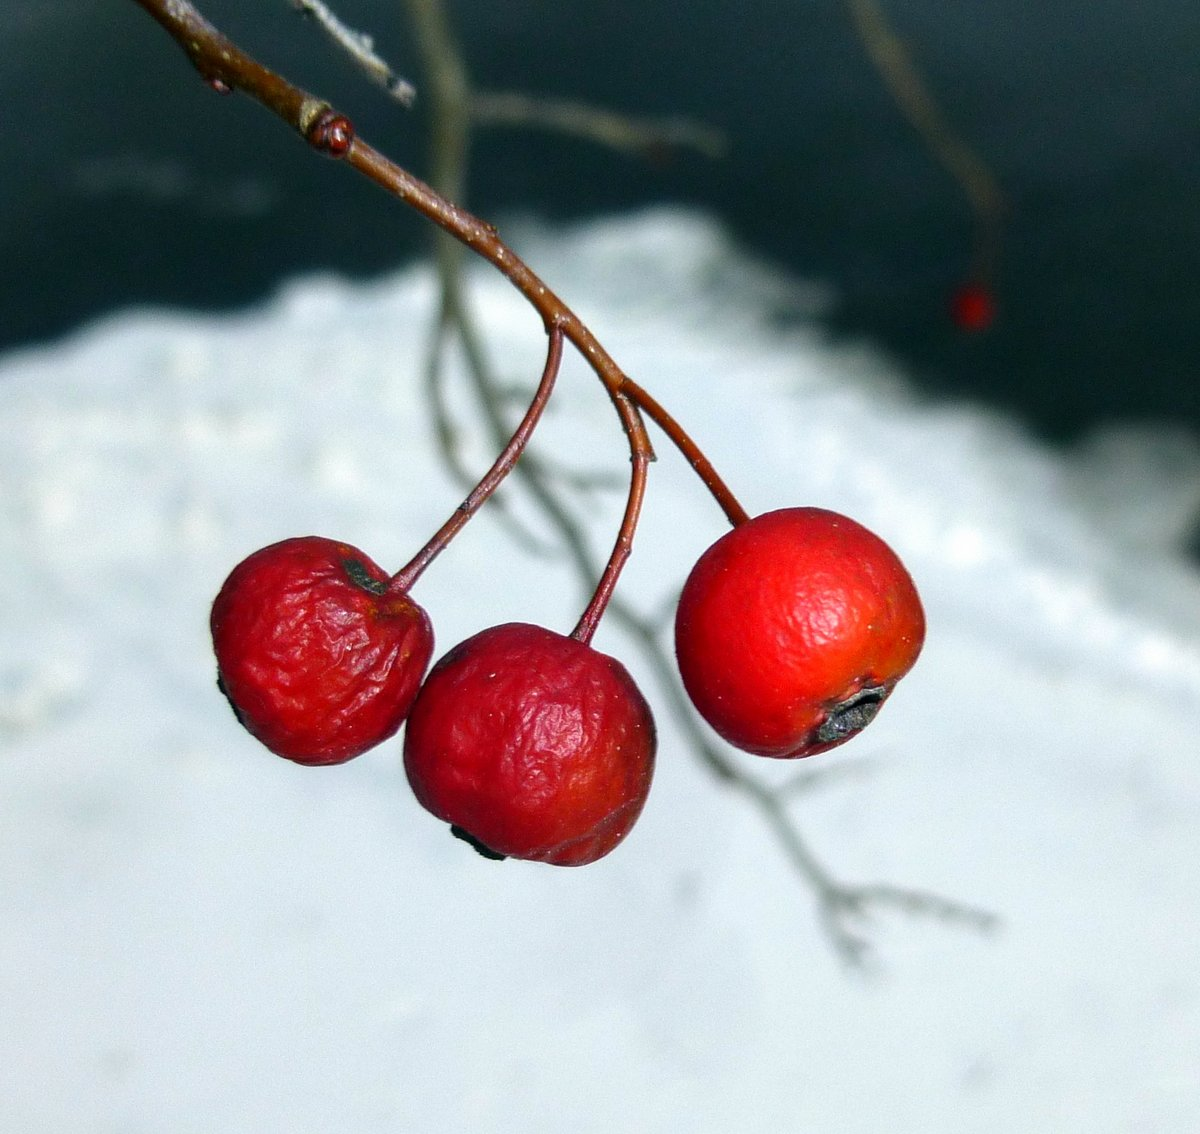 9. Hawthorn Fruit